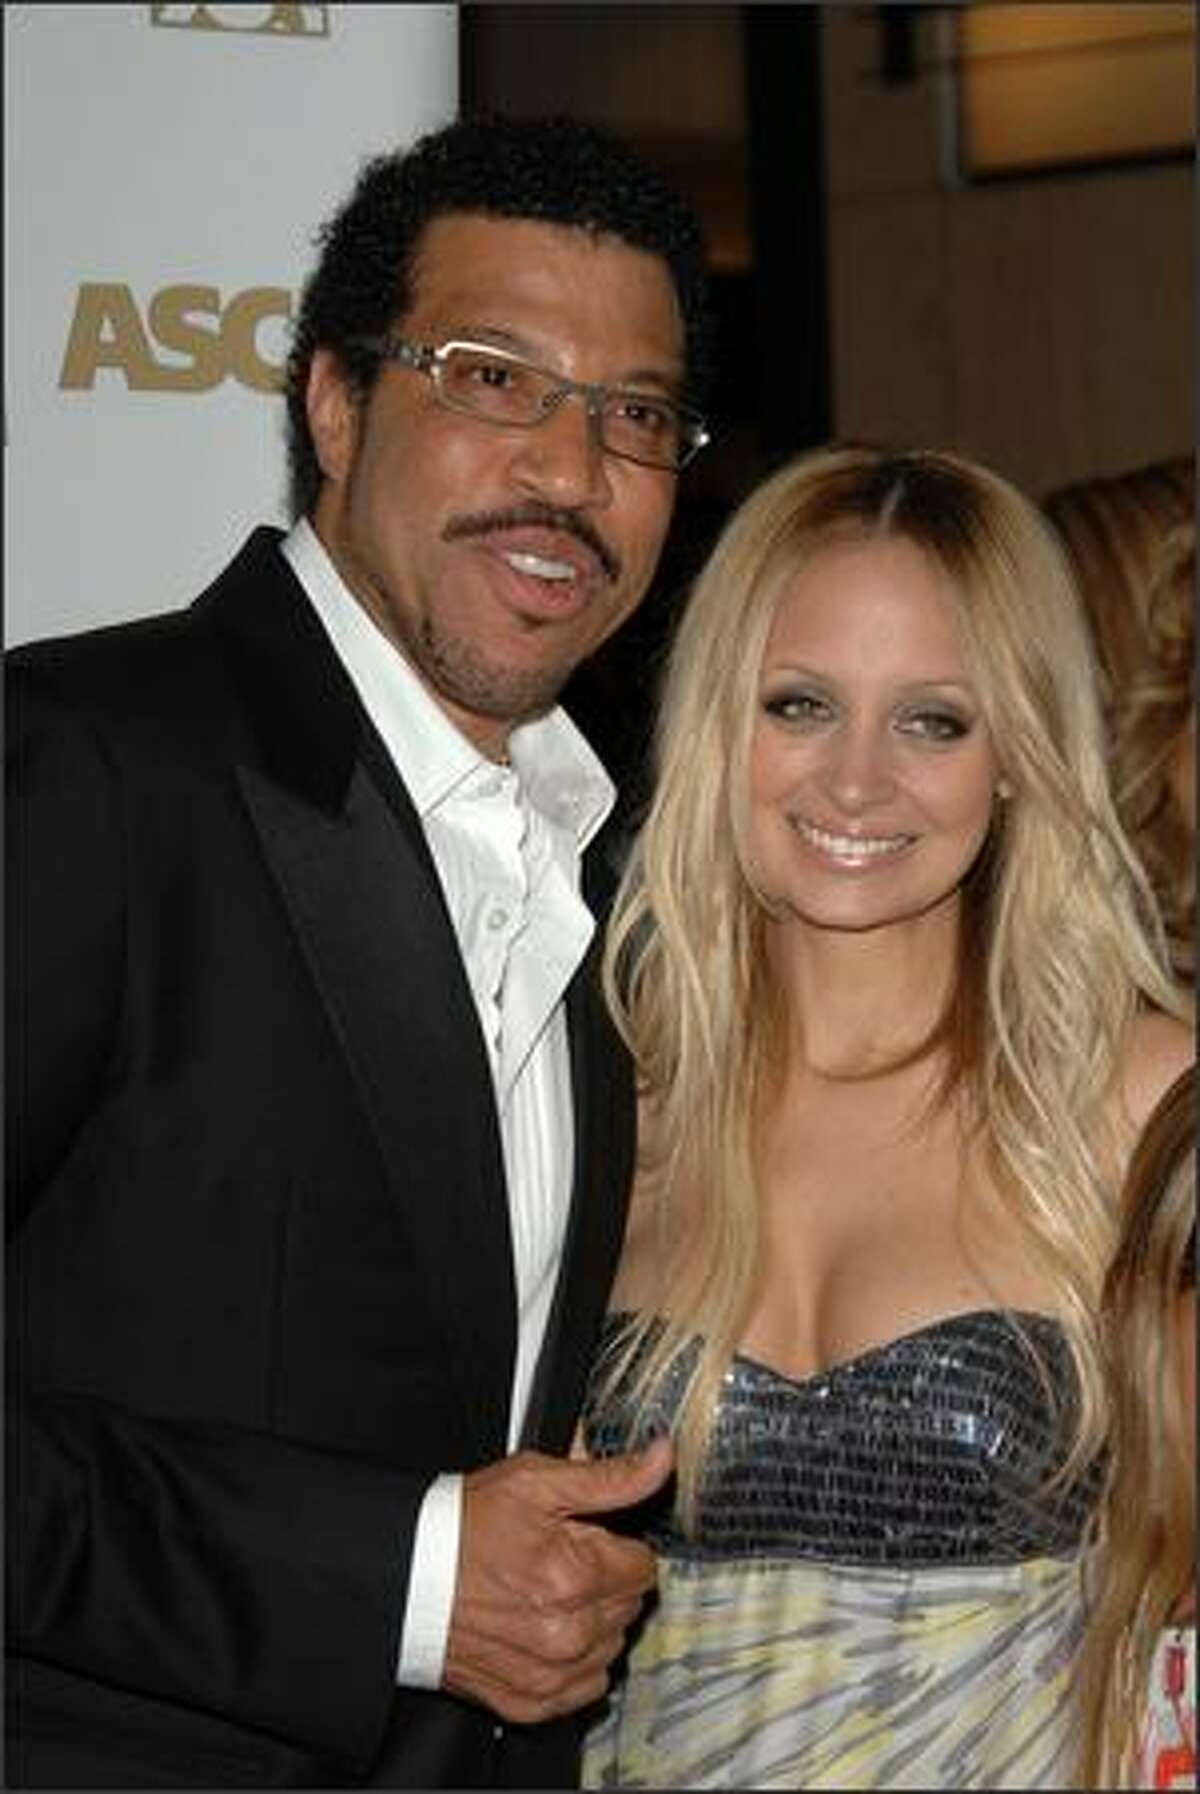 Singer Lionel Richie and daughter Nicole Richie attend ASCAP's 25th Annual Pop Music Awards at the Kodak Theatre on April 9, 2008 in Hollywood, California.